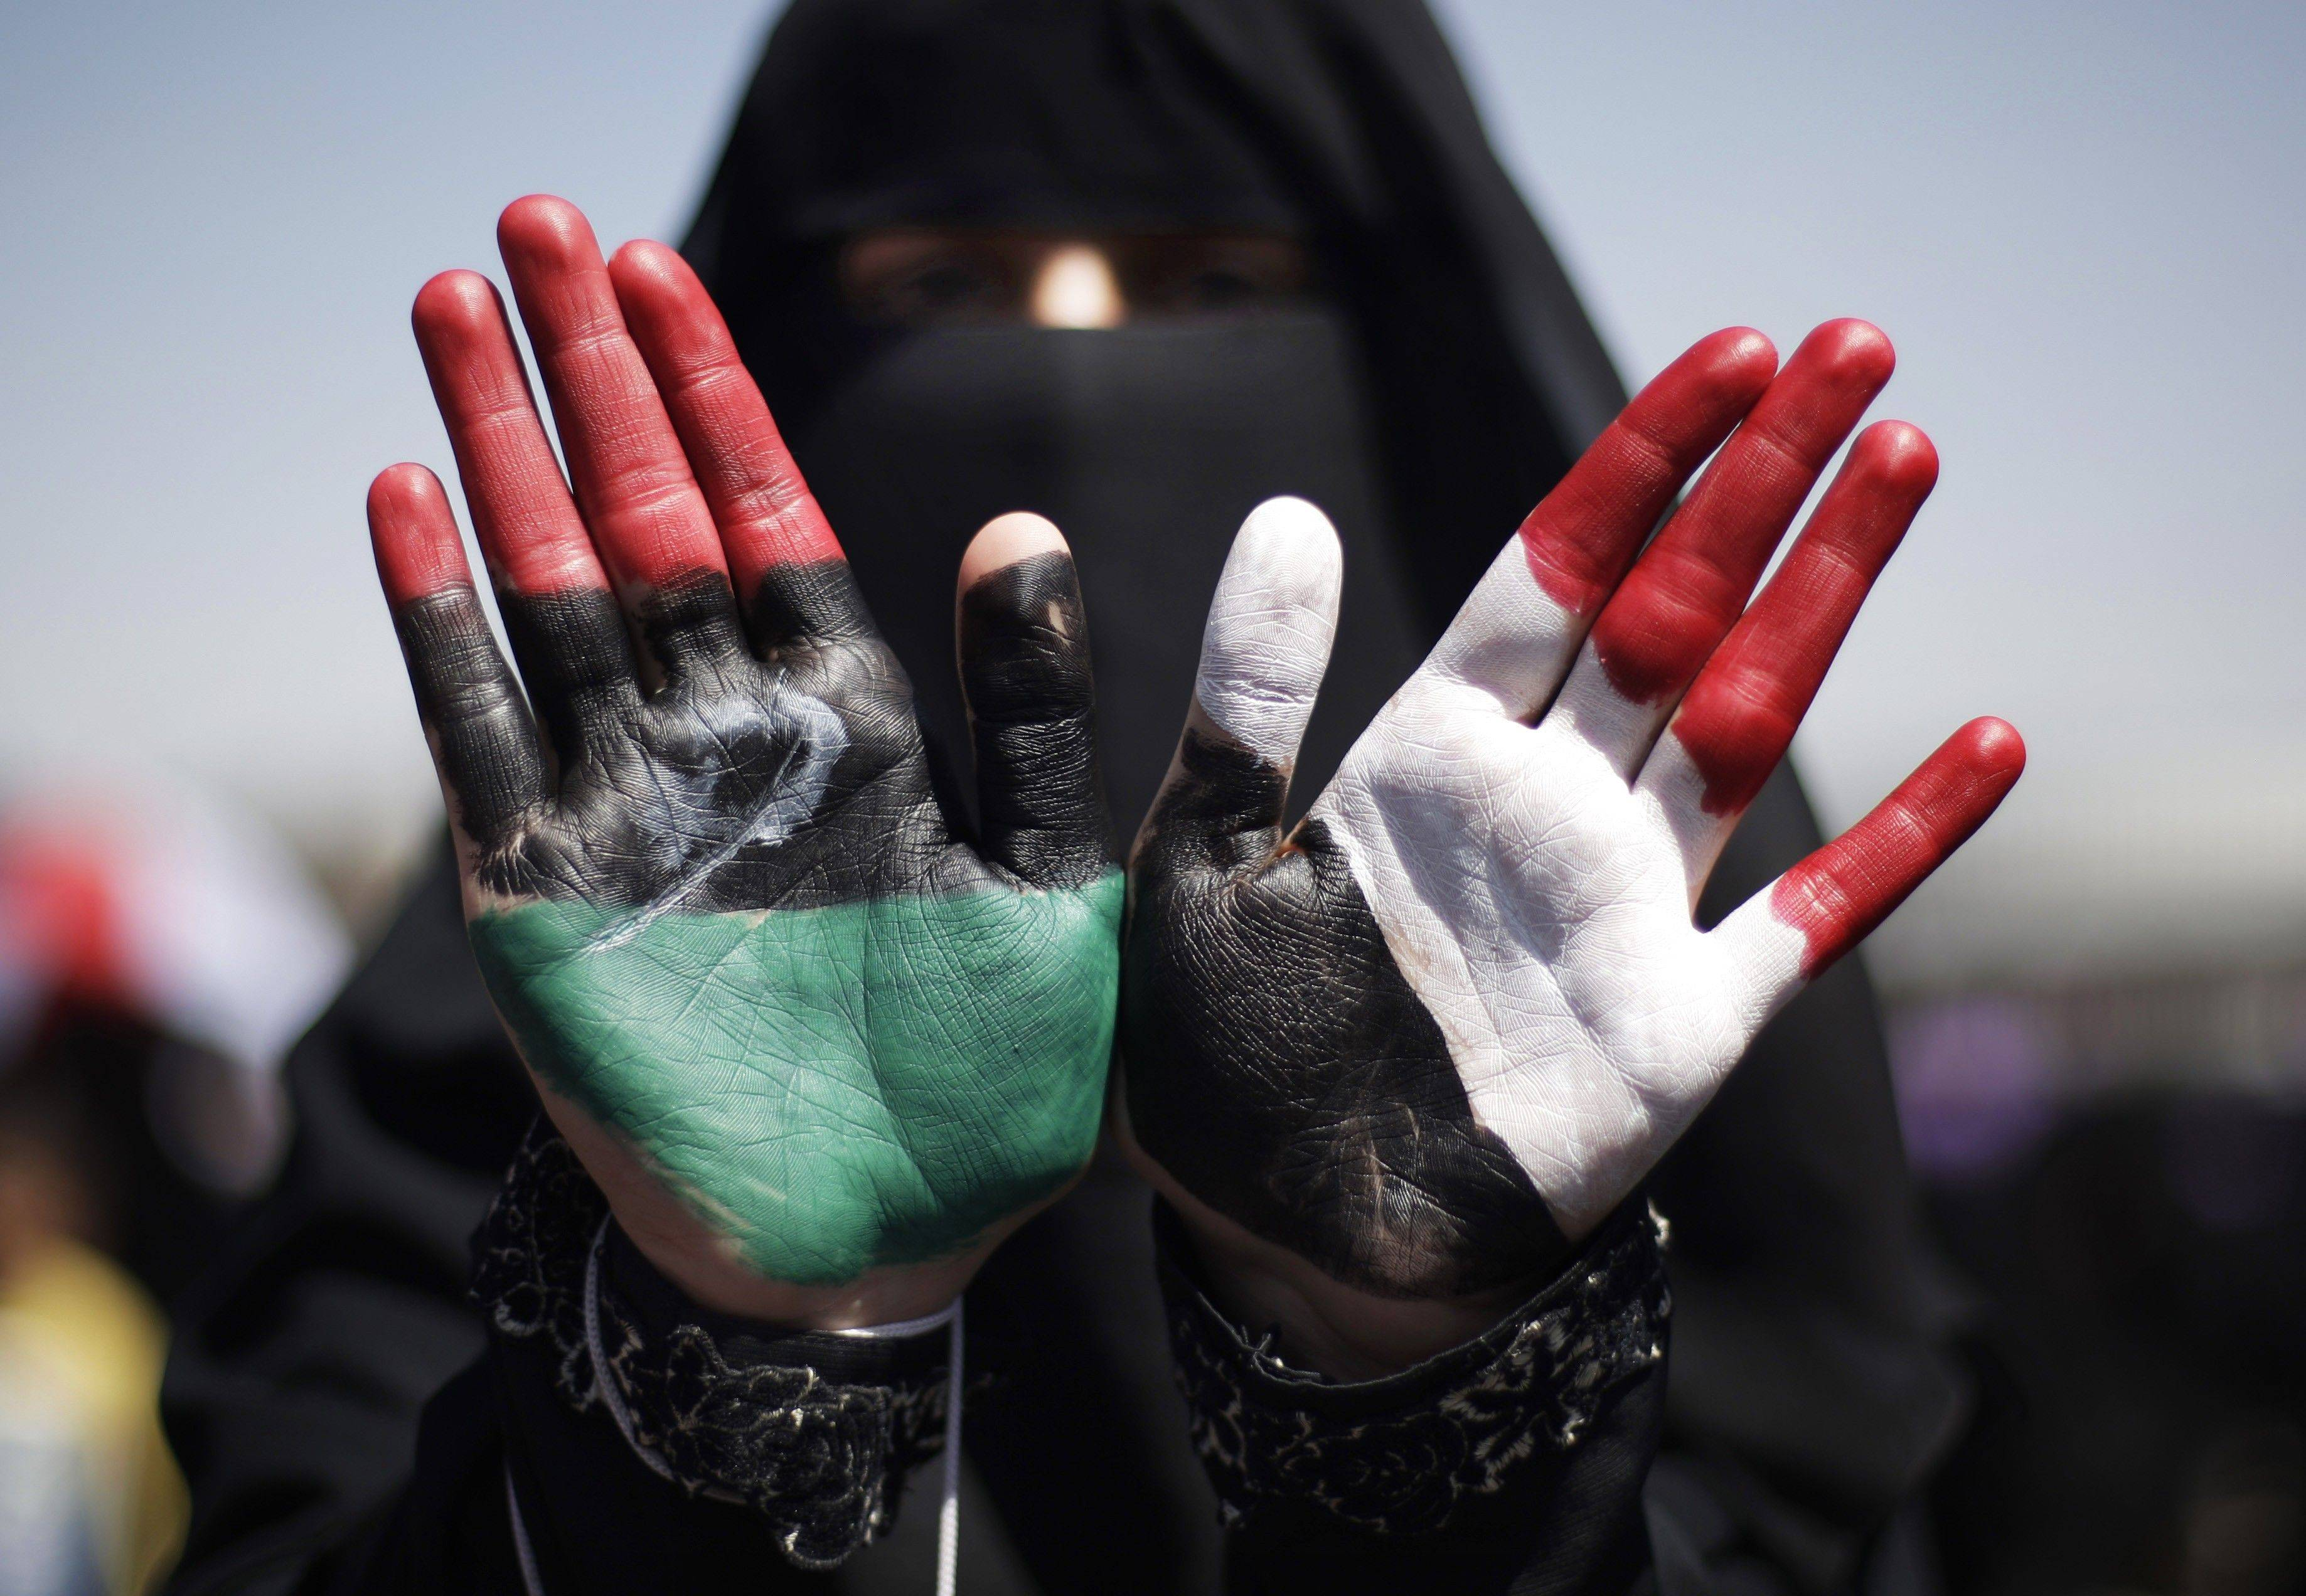 A Yemeni female protestor with colors of the Libyan and Yemeni flags painted on her hands attends a demonstration demanding the resignation of Yemeni President Ali Abdullah Saleh in Sanaa, Yemen.